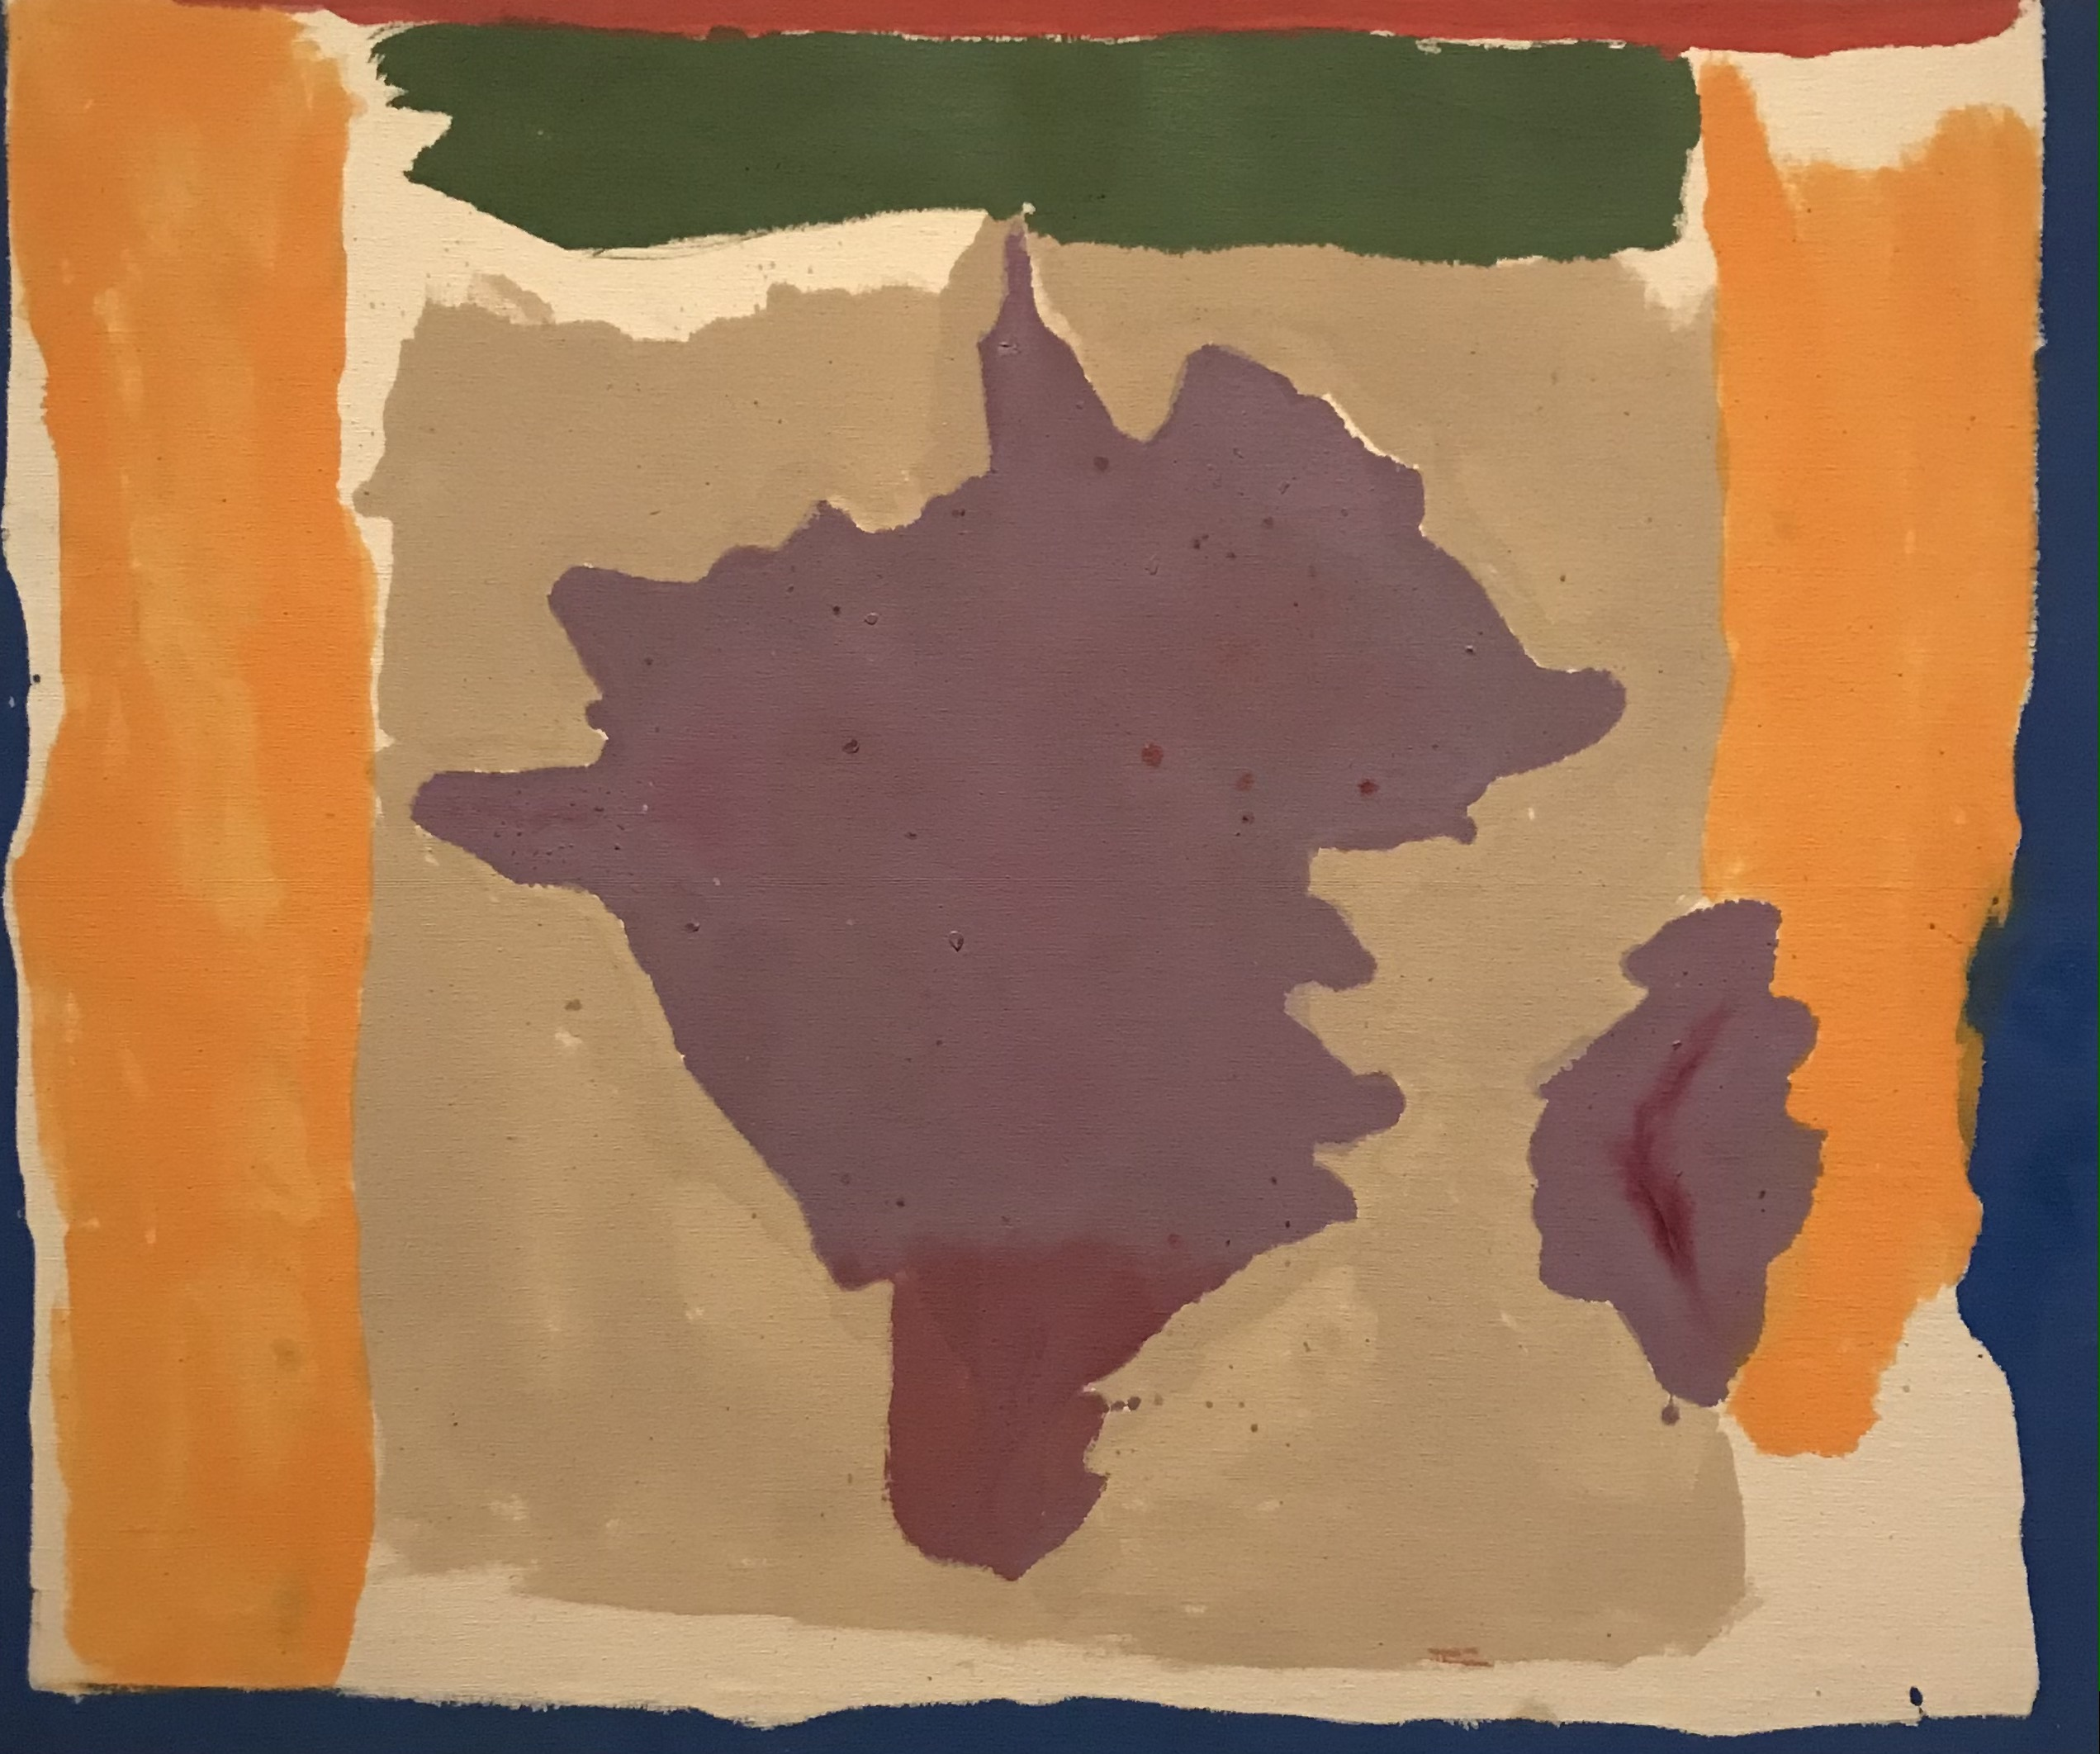 Artwork by Helen Frankenthaler with bright purple yellow and blue splotches